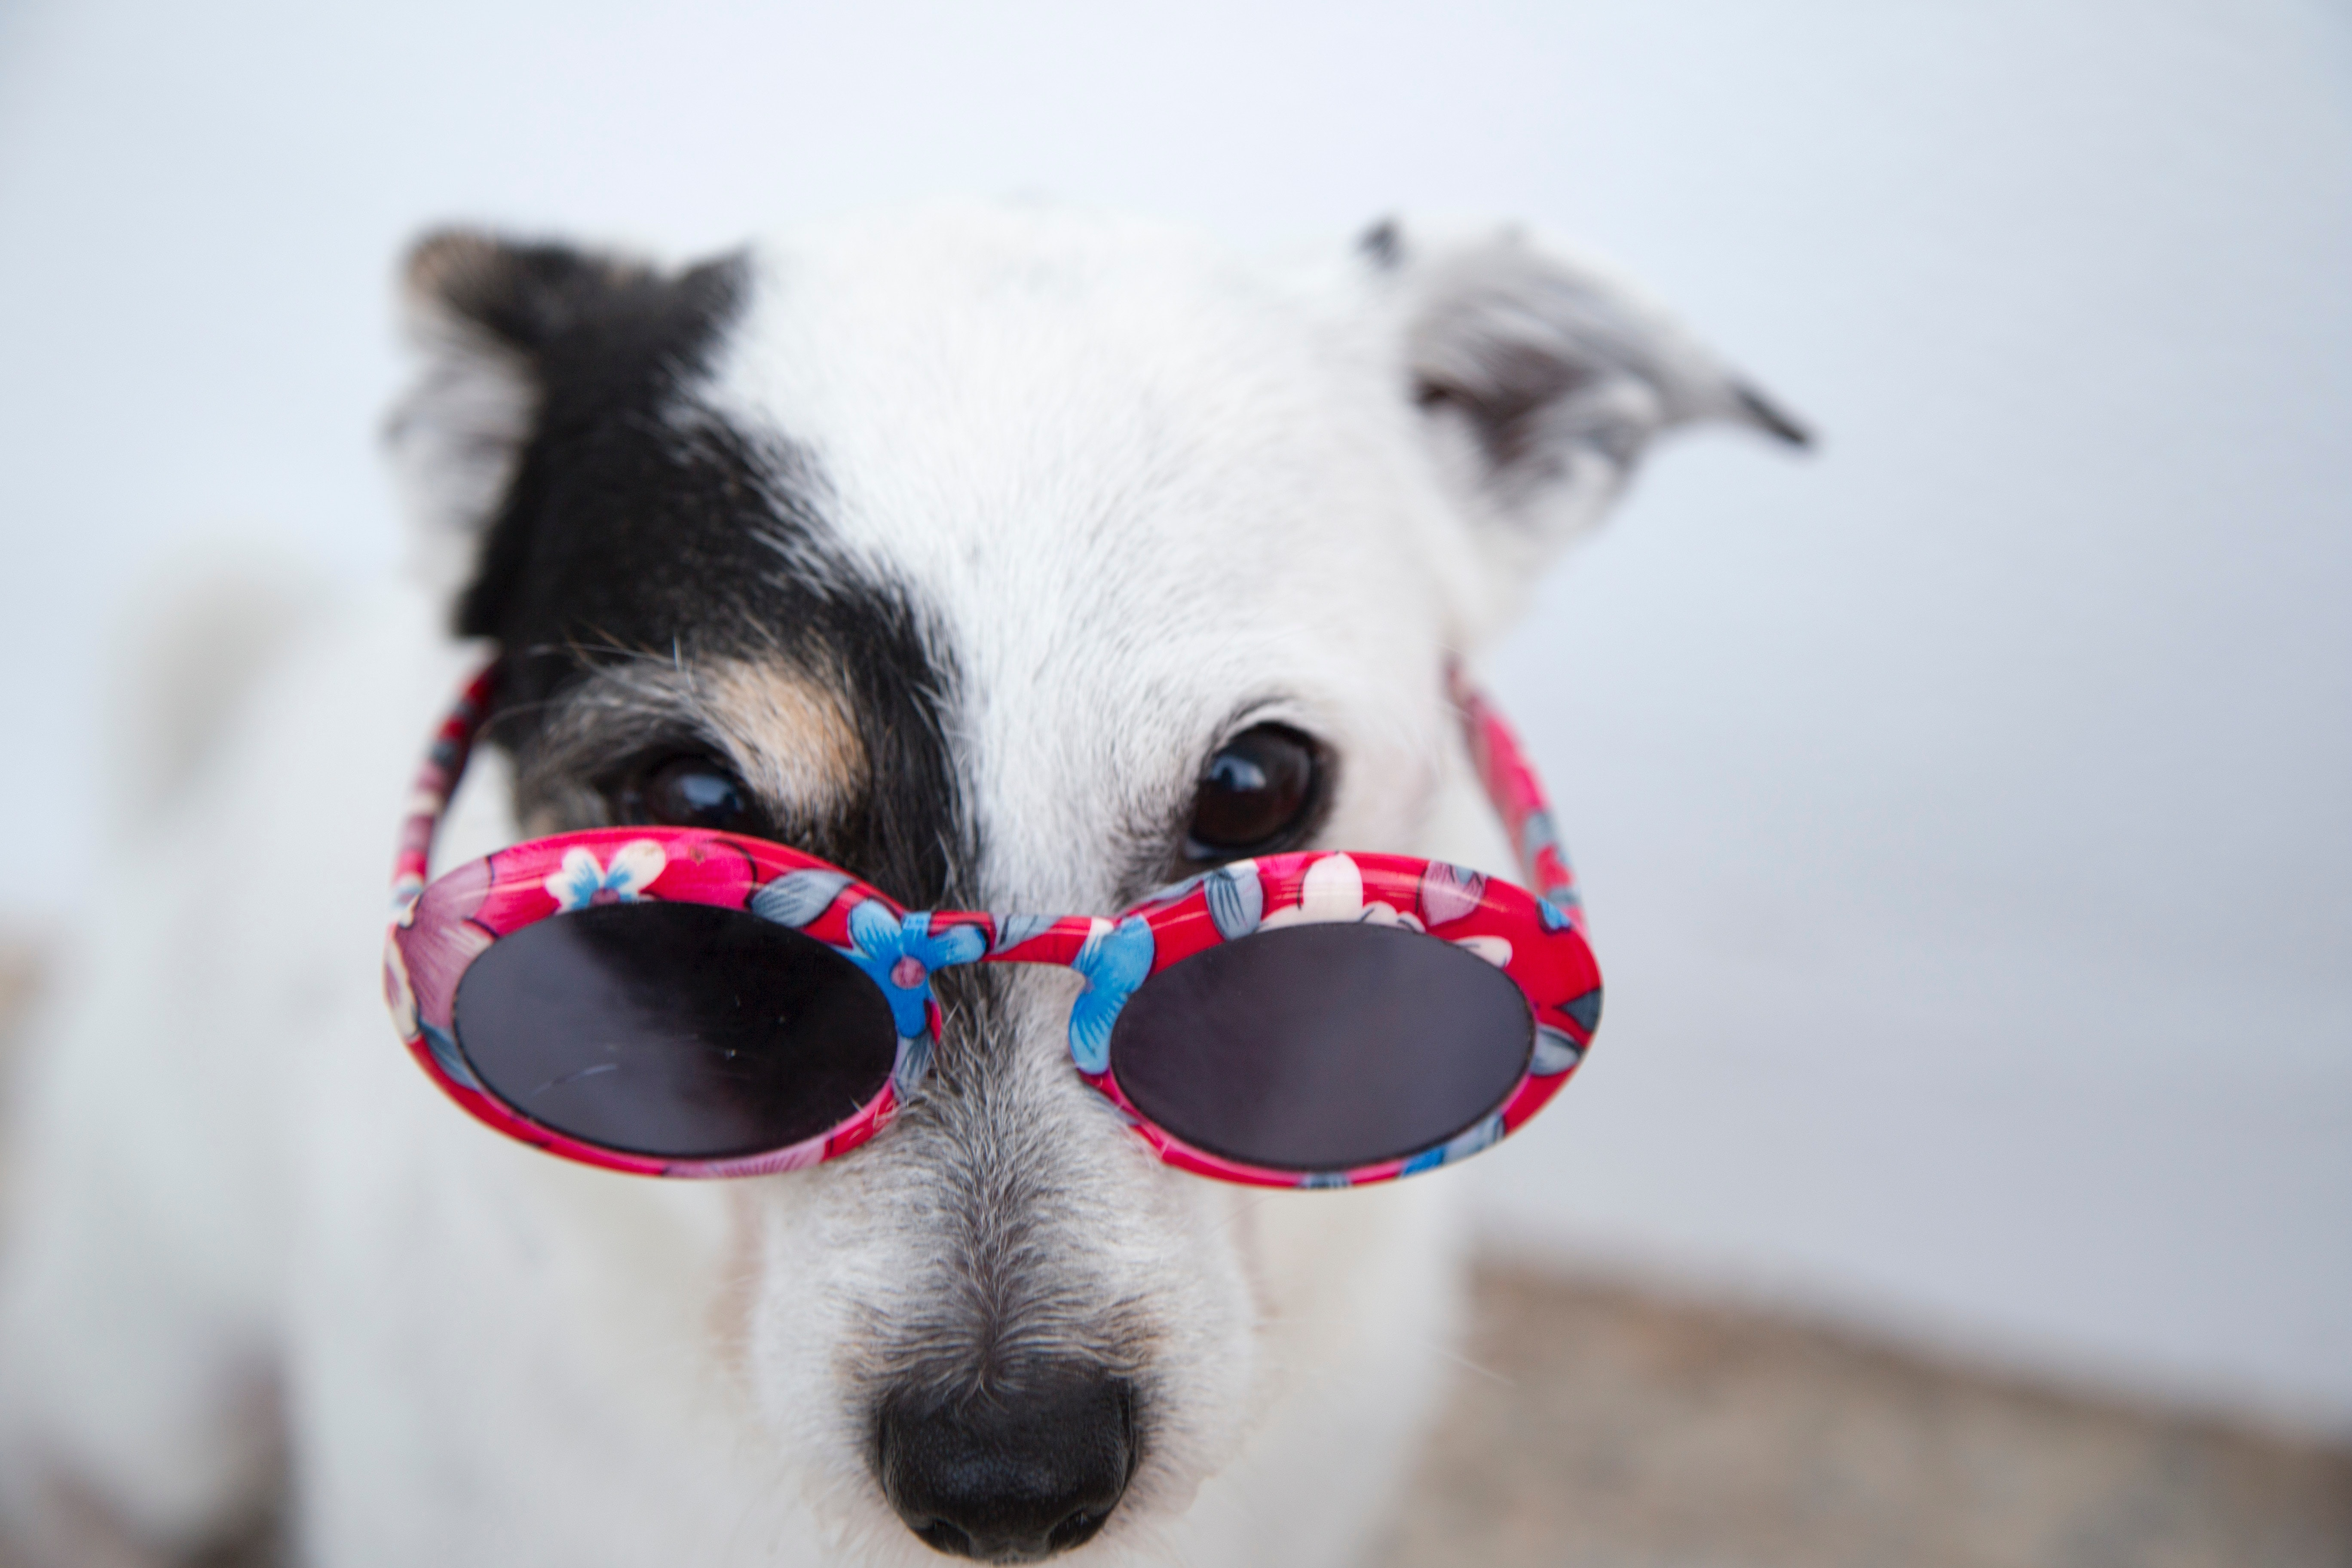 Jack Russel Terrier with sunglasses.